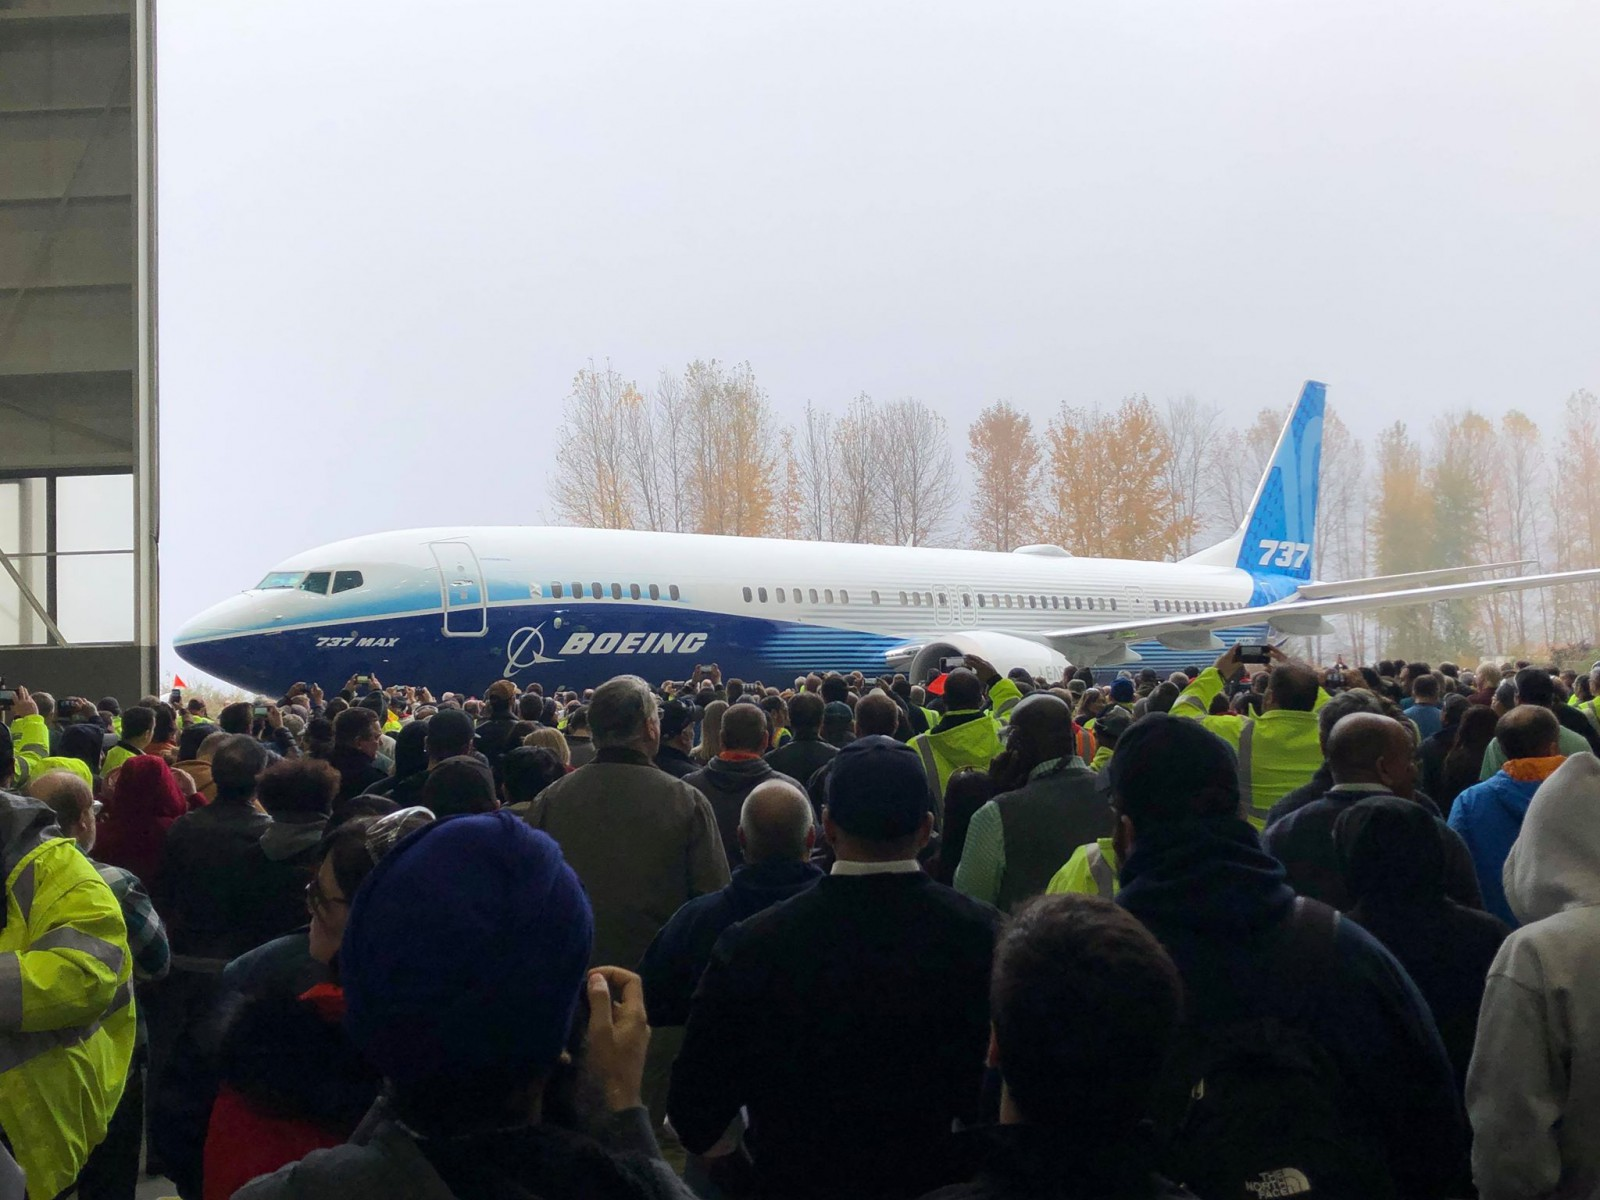 Boeing debuts 737 Max 10 in Washington